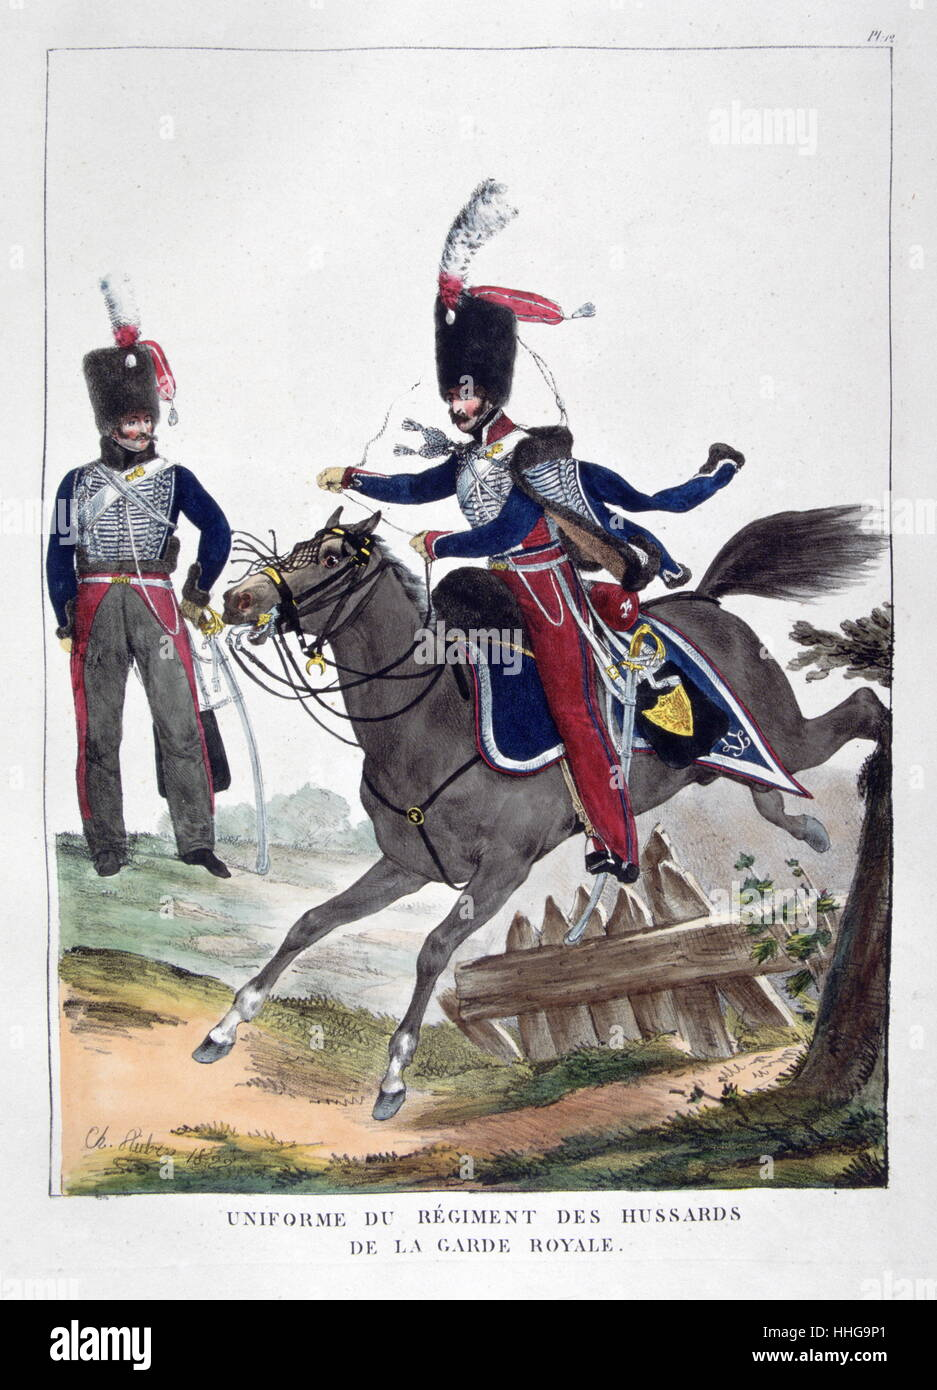 Uniformed cavalryman of the French Hussars, Royal Guard Regiment, 1823 - Stock Image